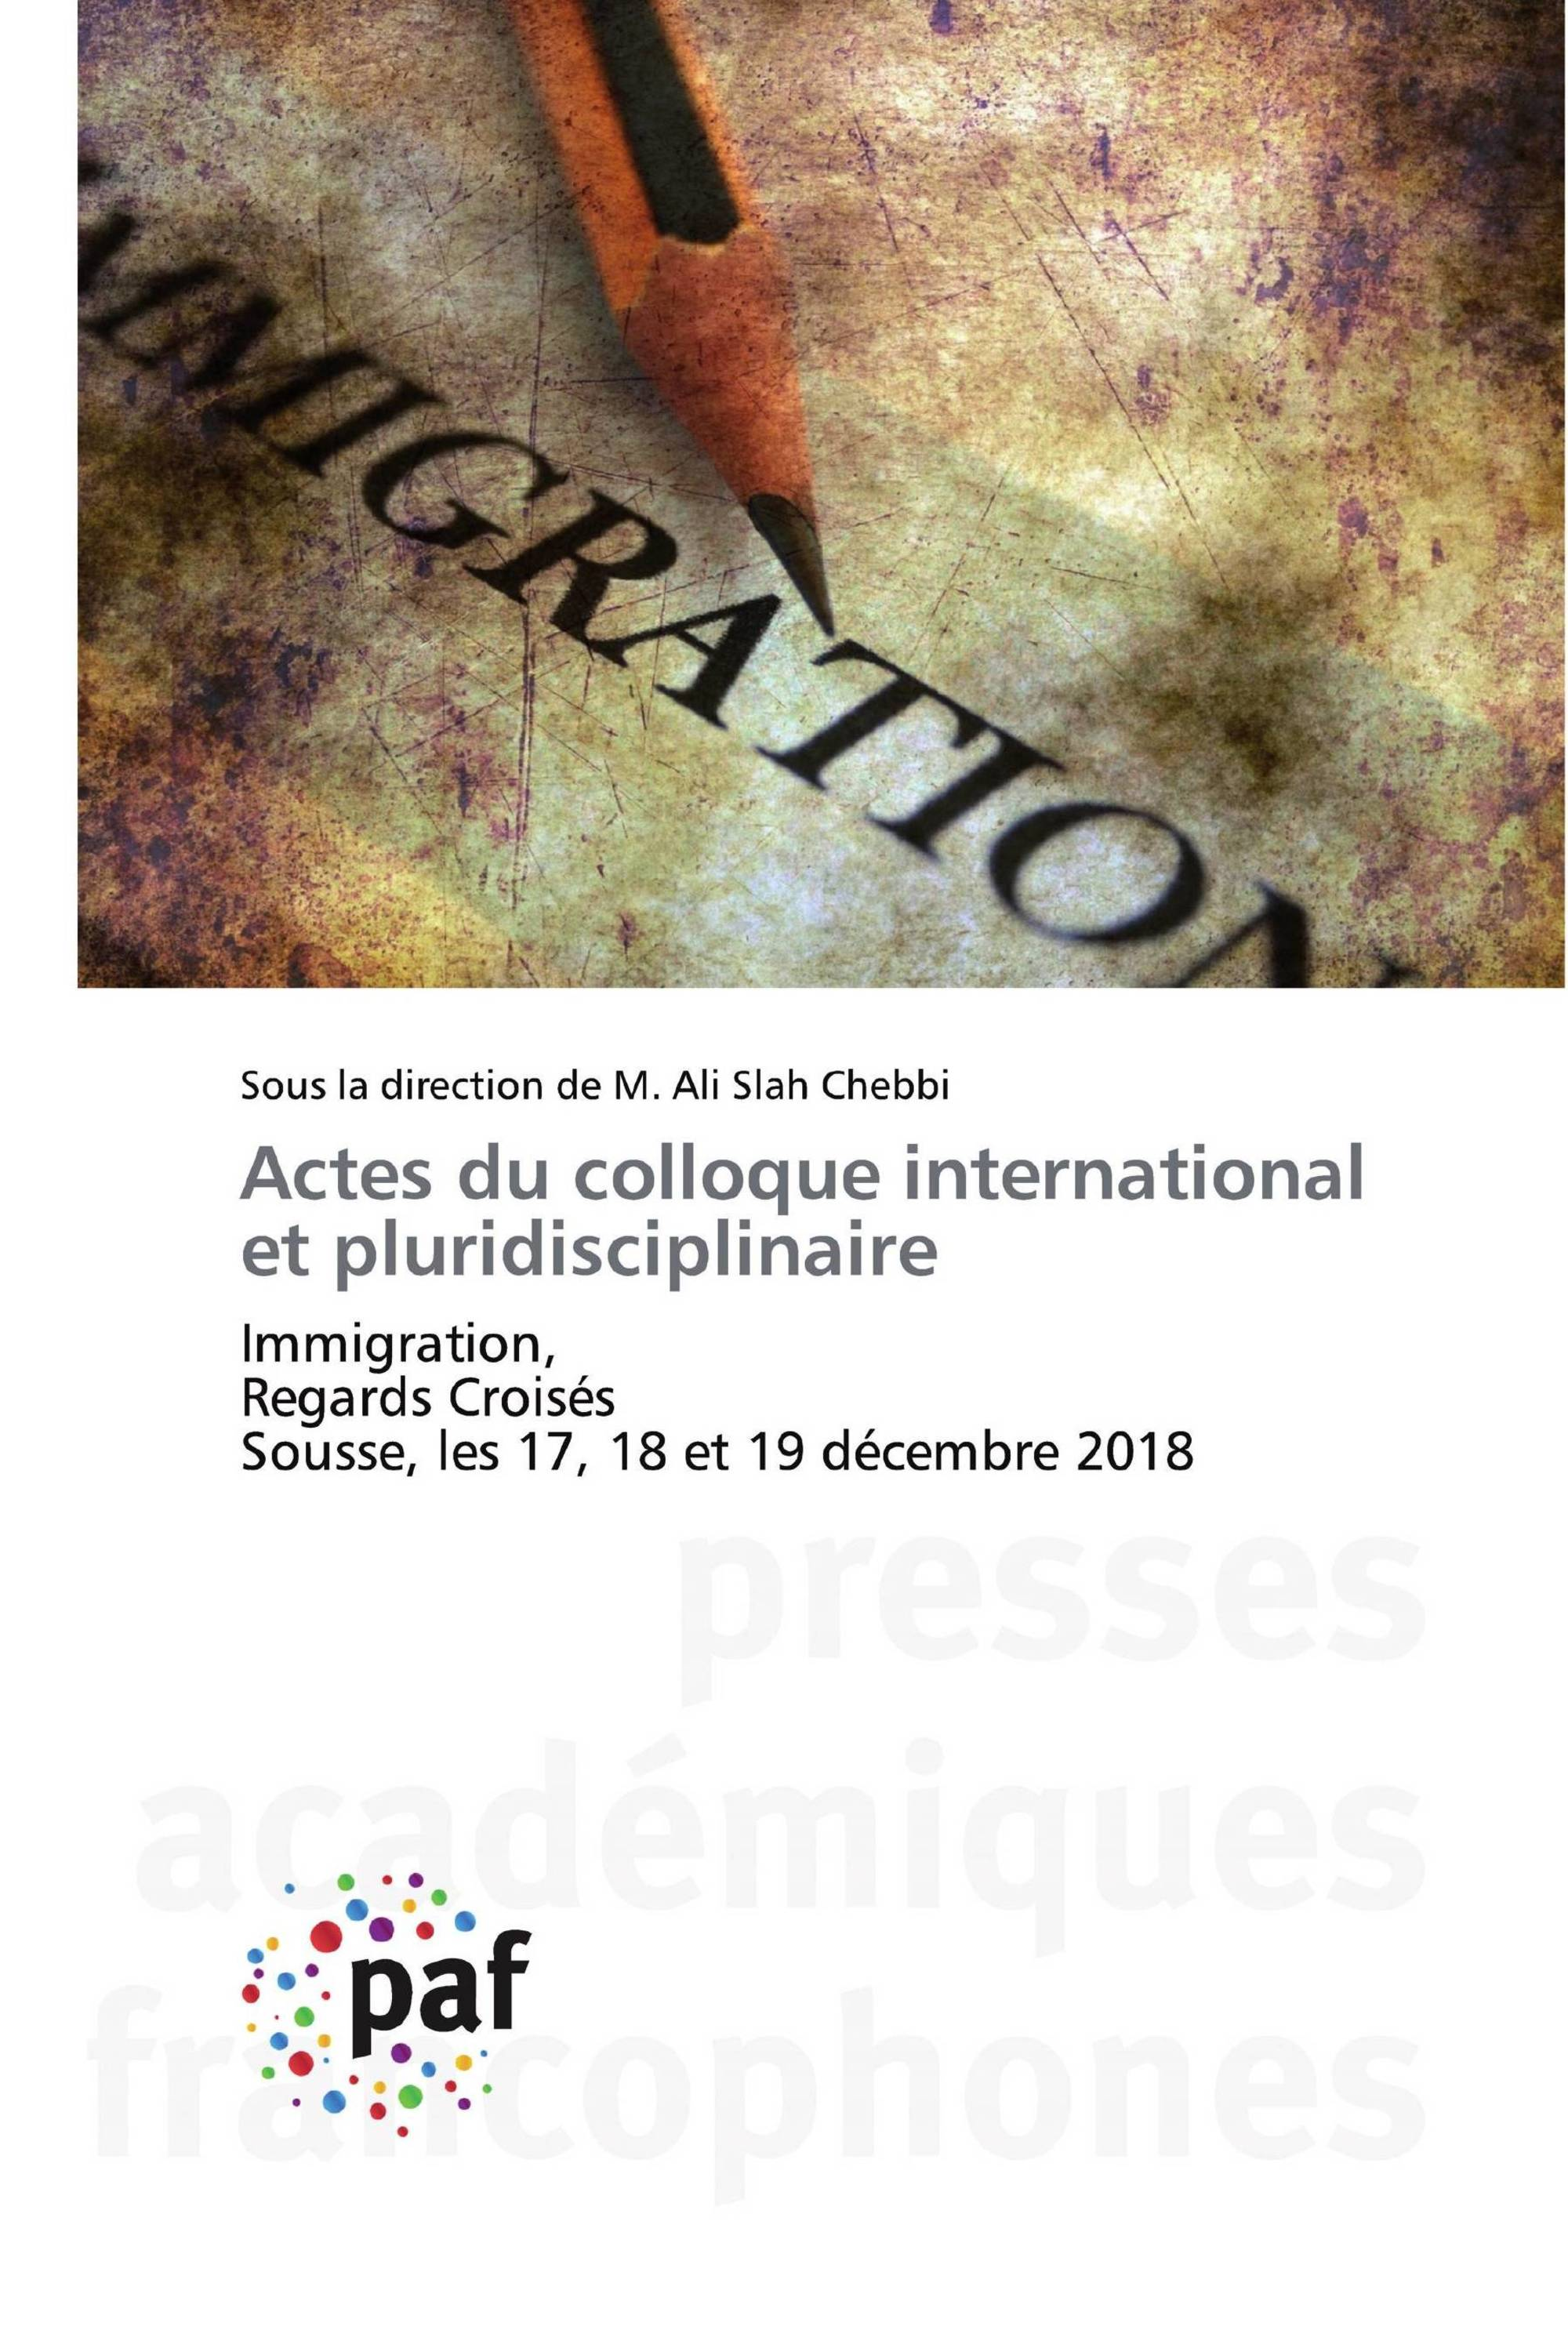 Actes du colloque international et pluridisciplinaire